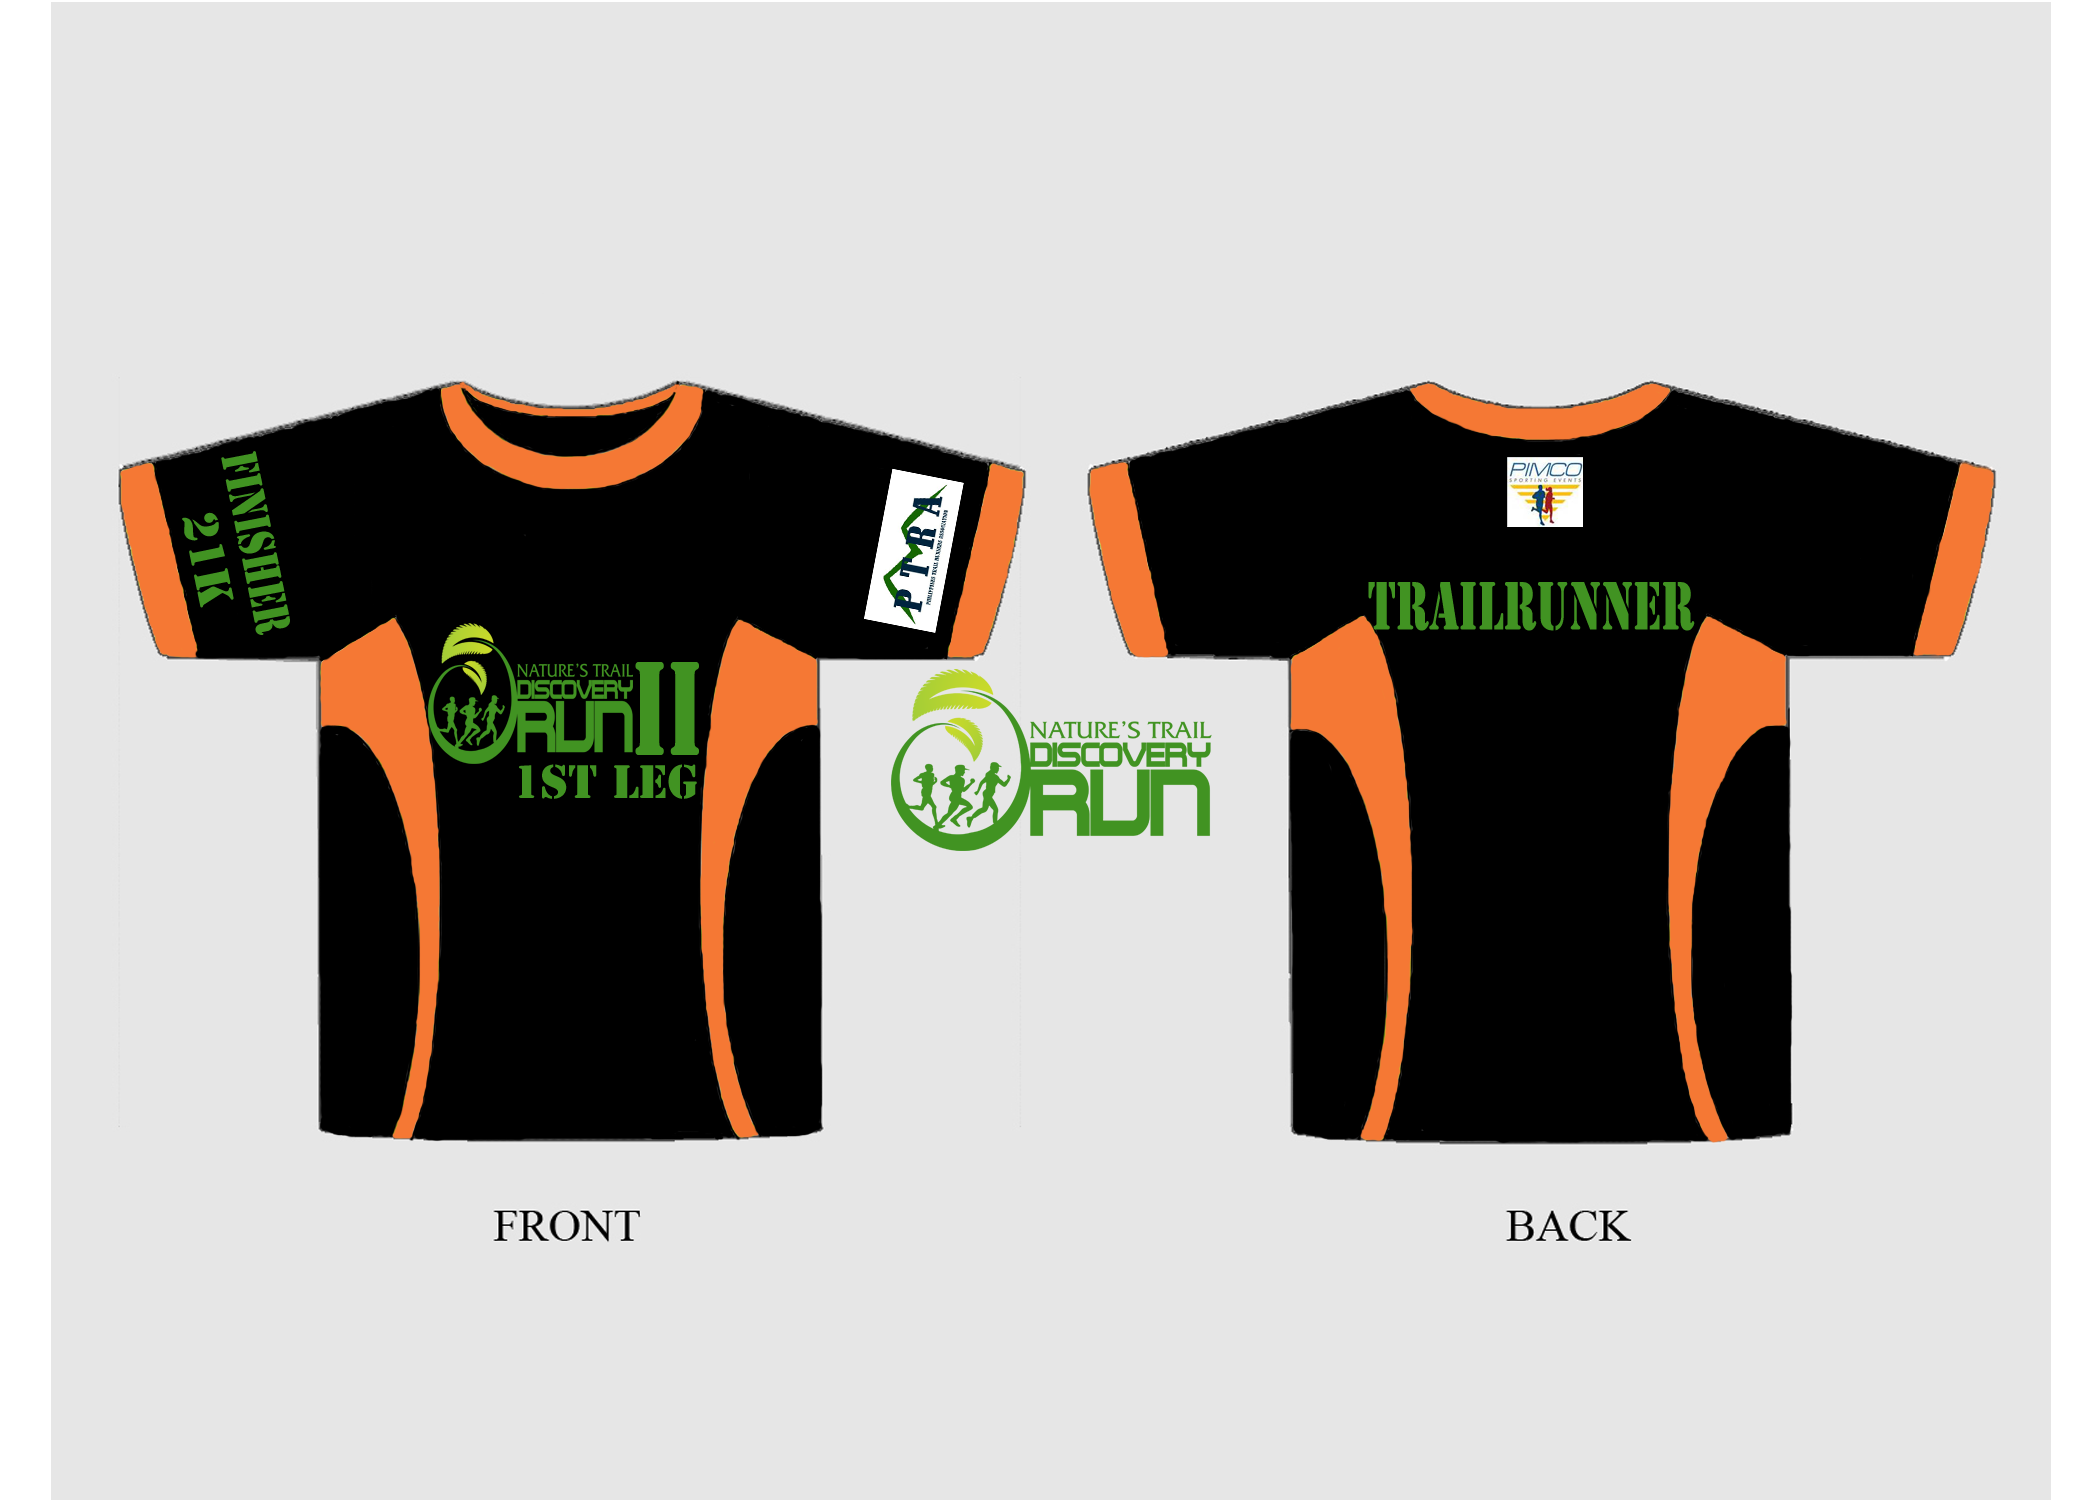 natures-trail-discovery-run-II-2013-finisher-shirt-design